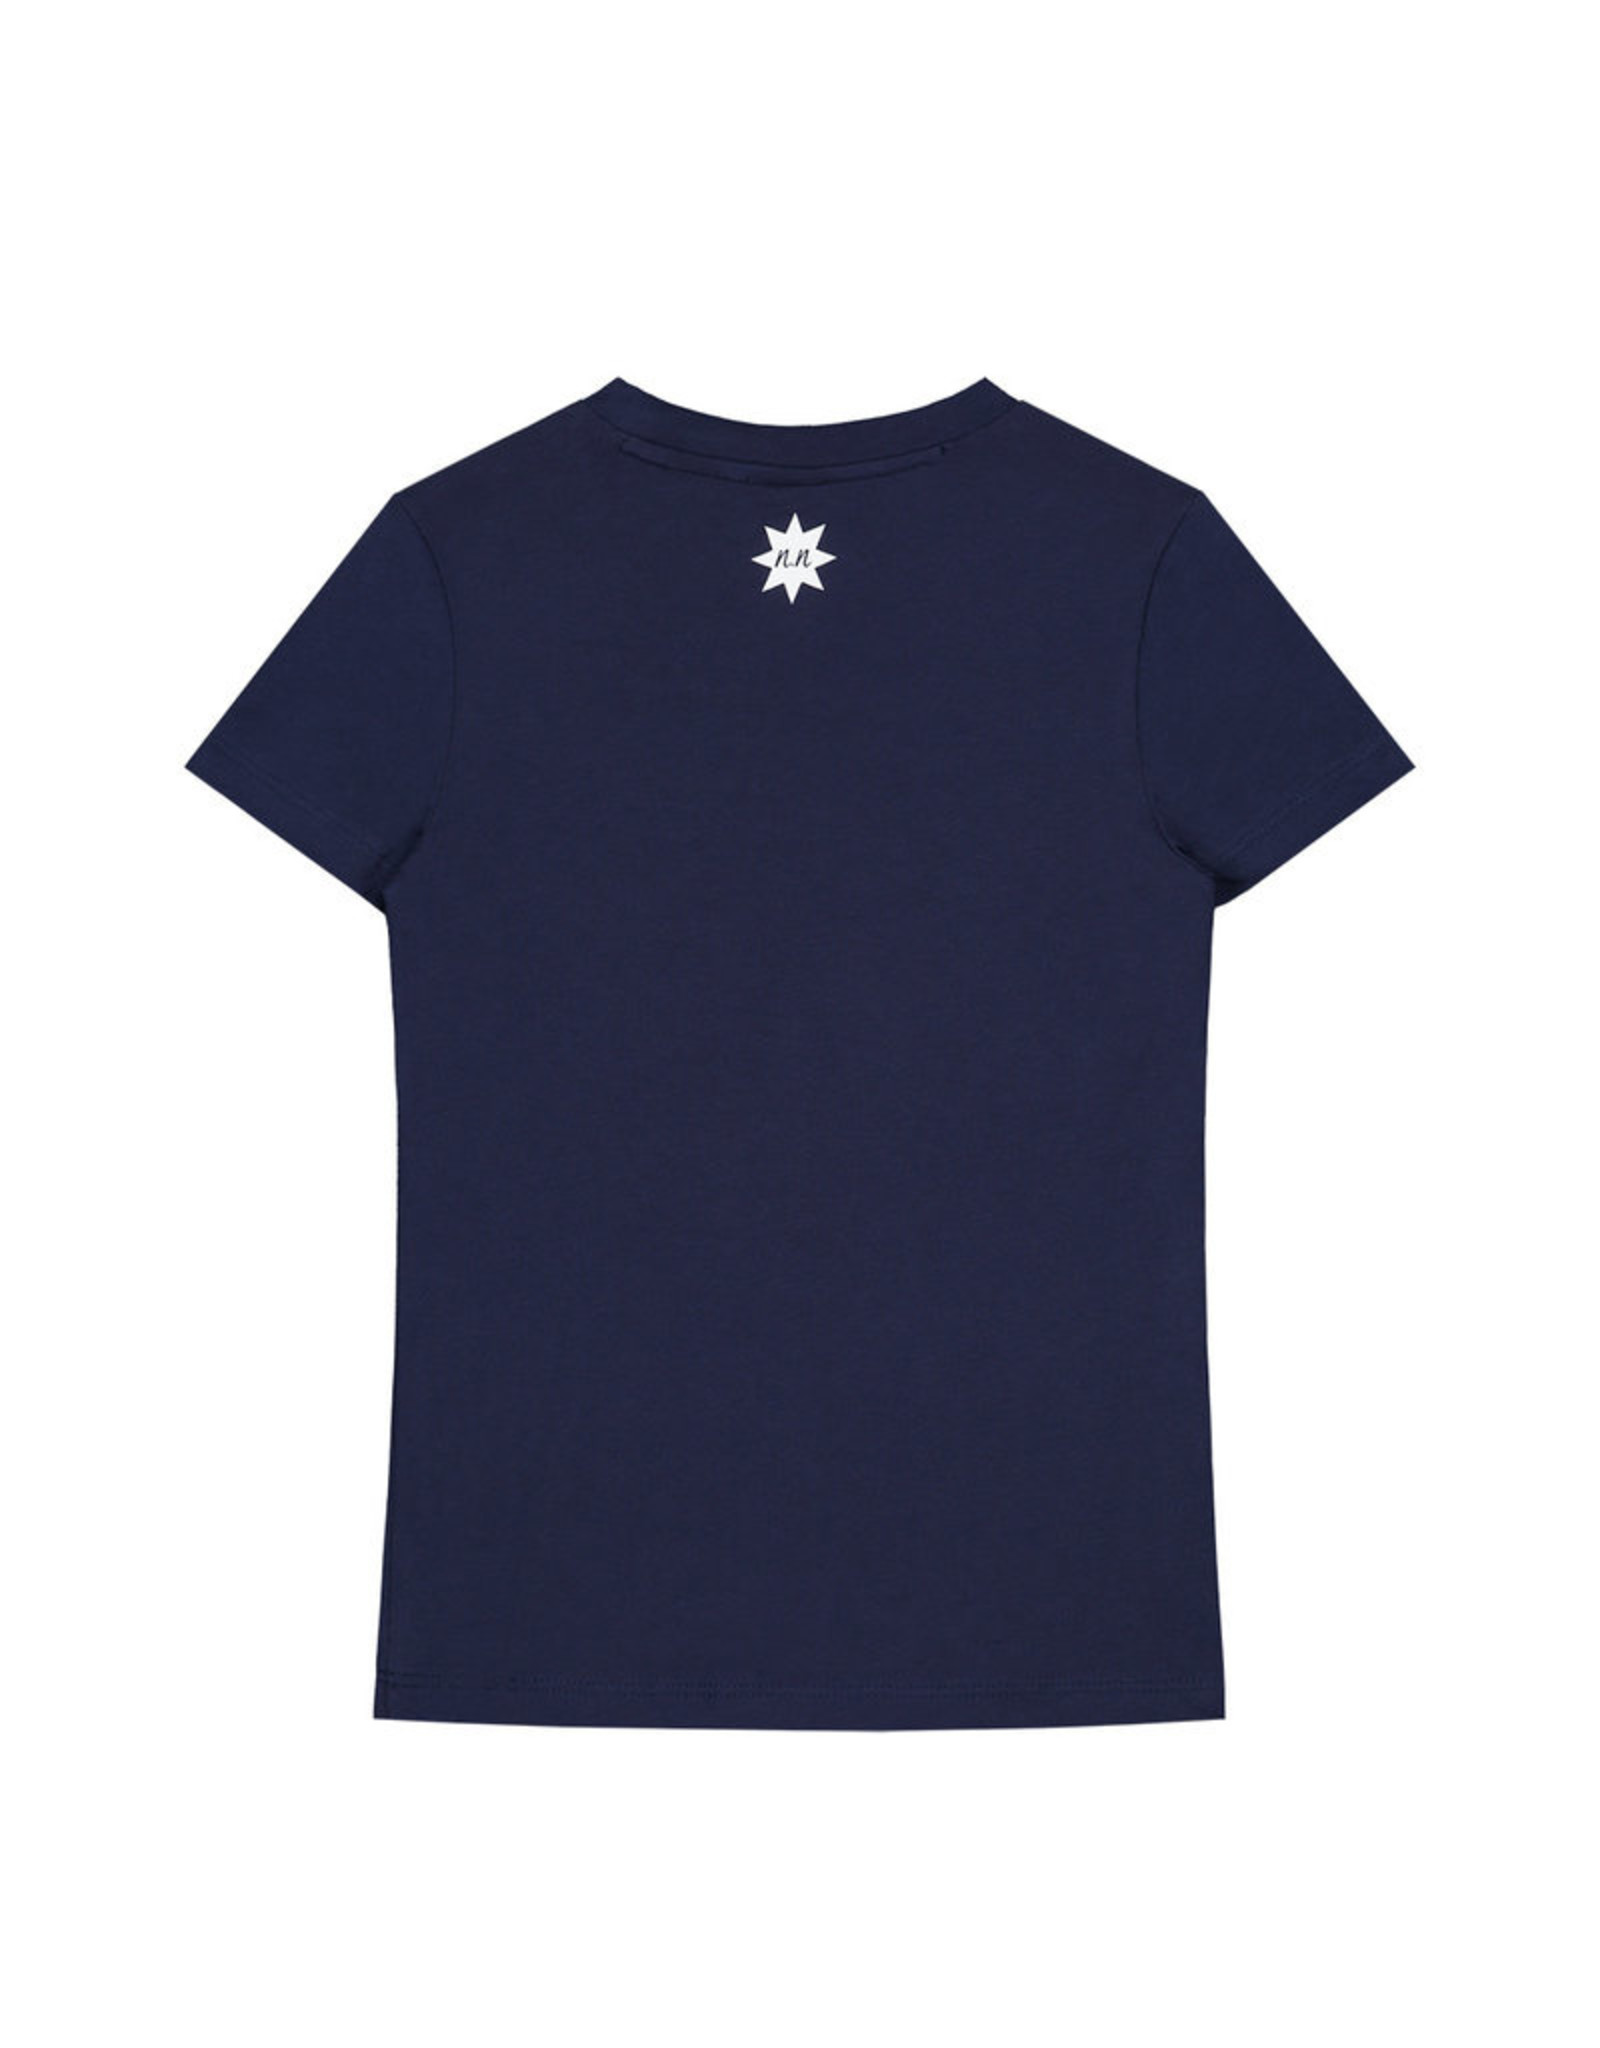 NIK & NIK Girls T.shirt Love Wins Color: dark blue